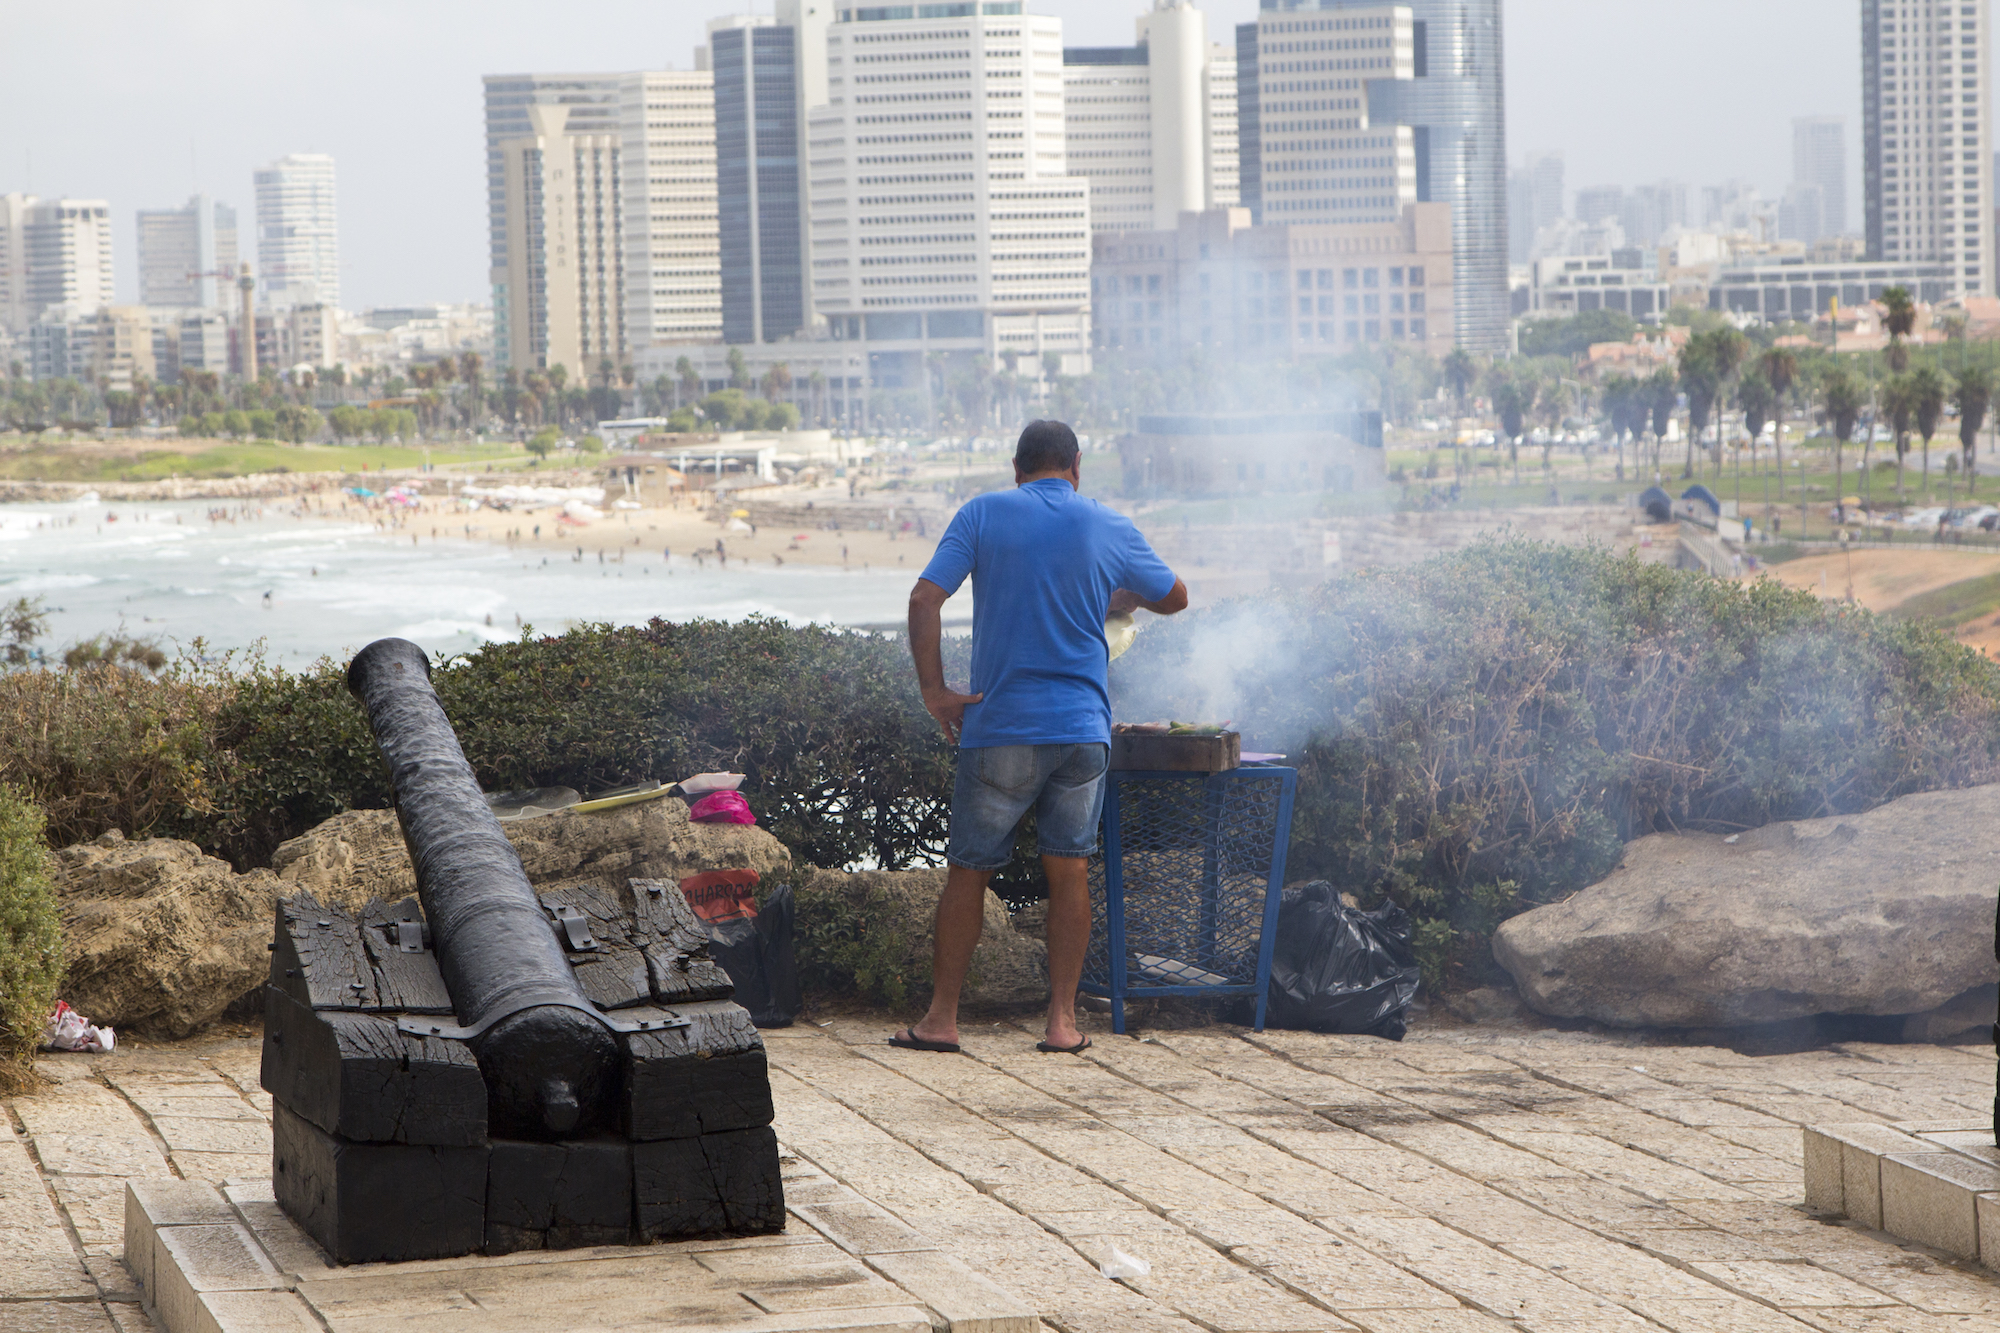 Always a good day for a garbage can BBQ in Tel Aviv-Yafo, Israel #travel photography by Geena Matuson @geenamatuson #thegirlmirage at thegirlmirage.com.